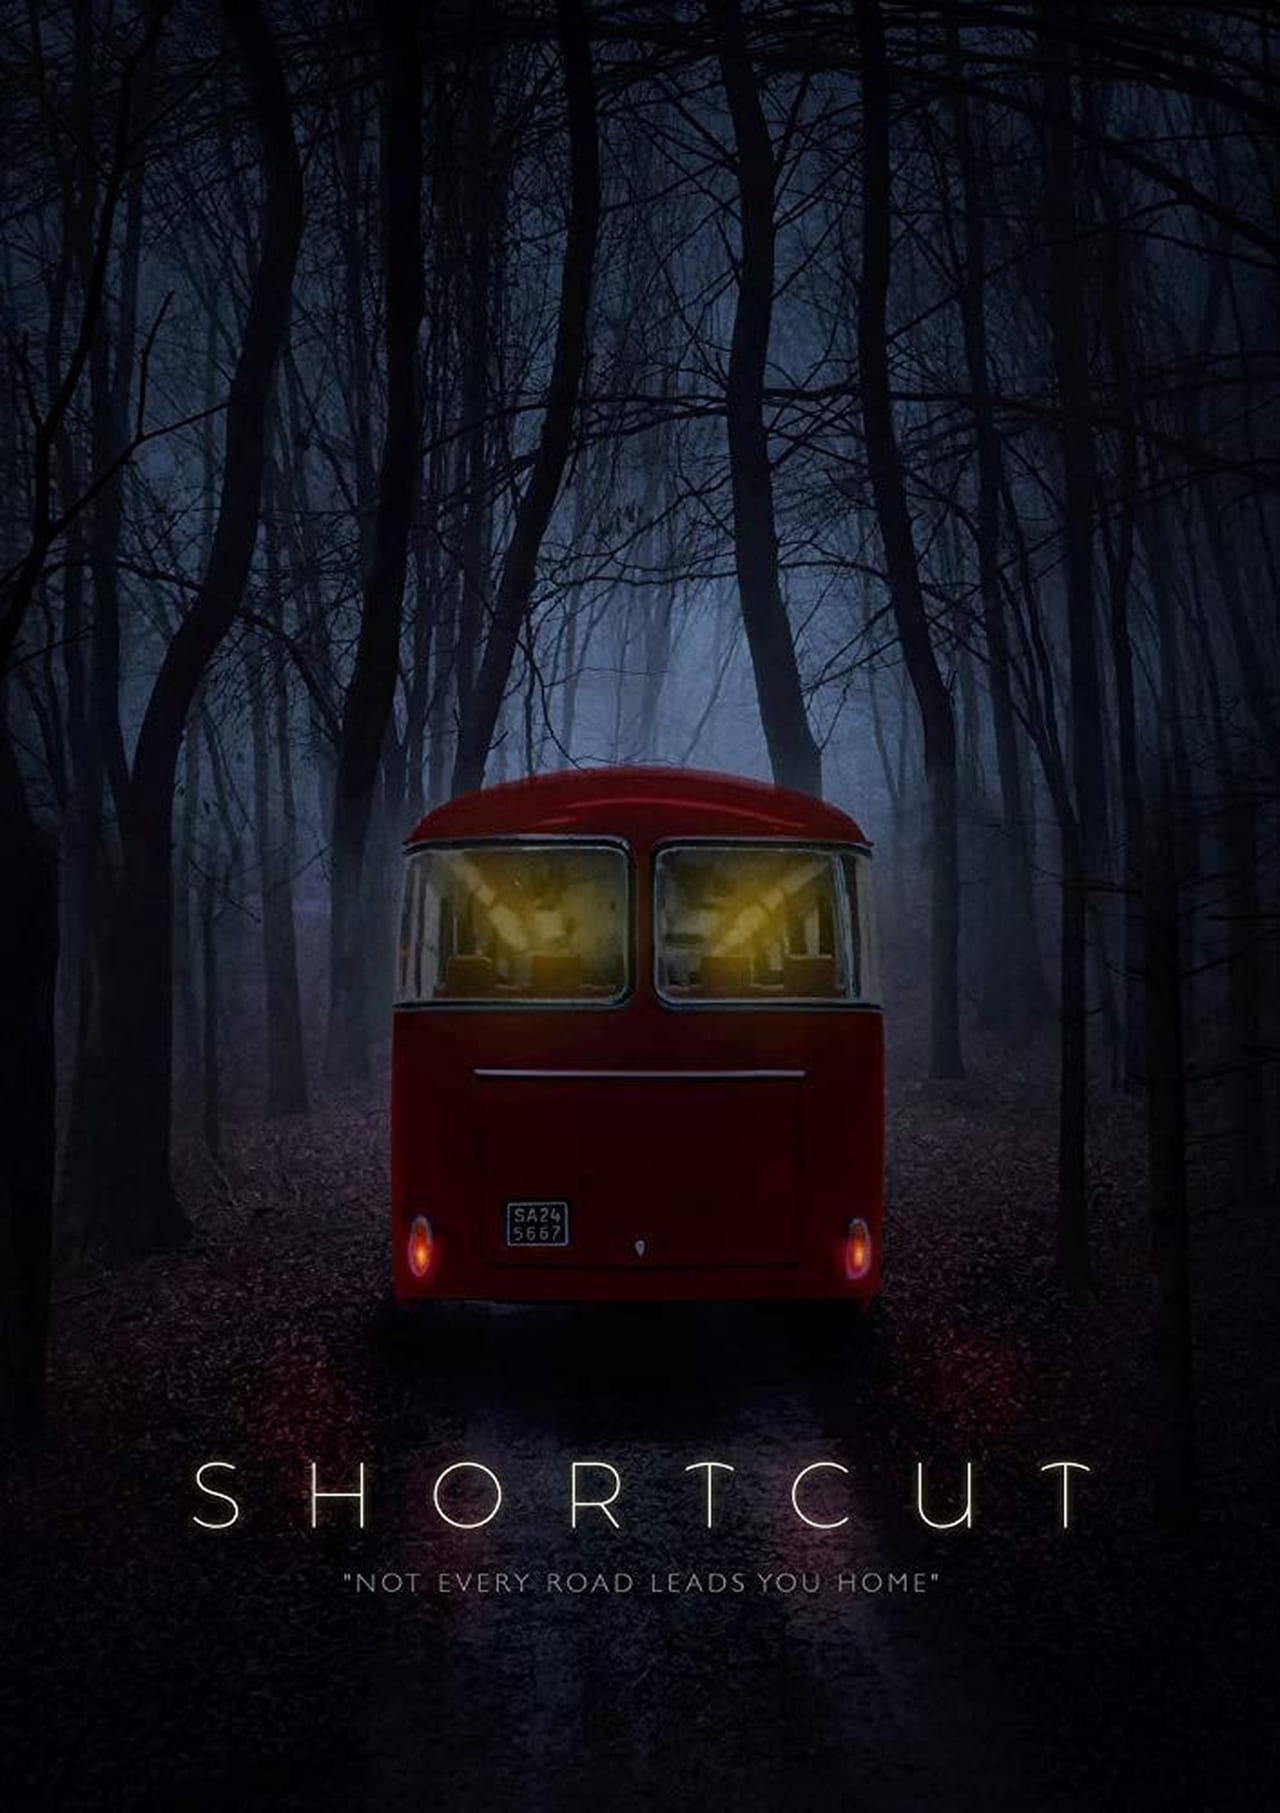 Watch Streaming Shortcut (2020) Movies Without Downloading at thrill.movieonrails.com